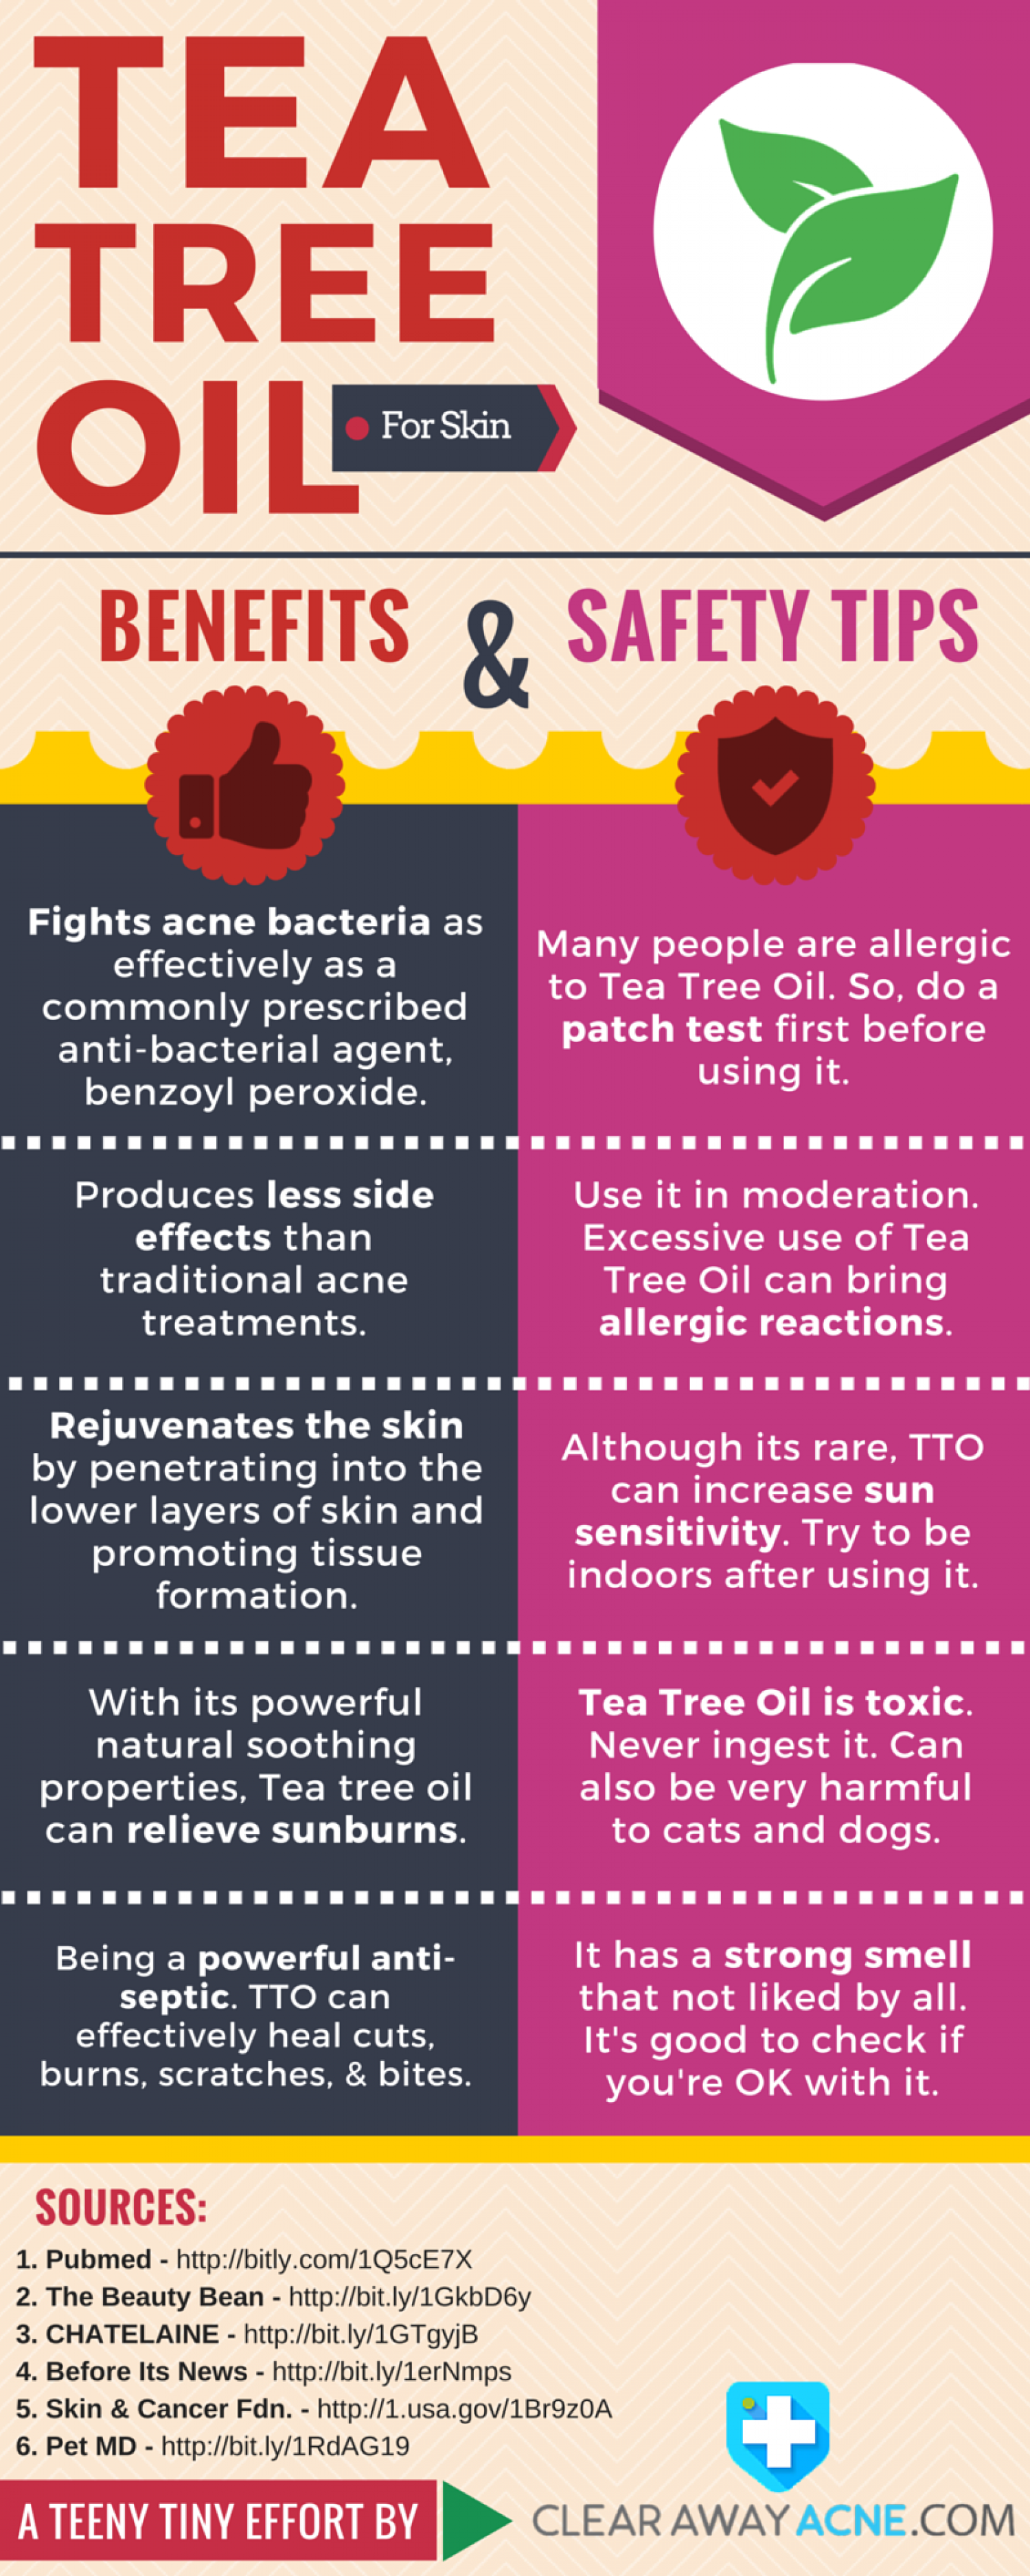 Tea Tree Tree Oil For Skin Care - Benefits and Safety Tips Infographic